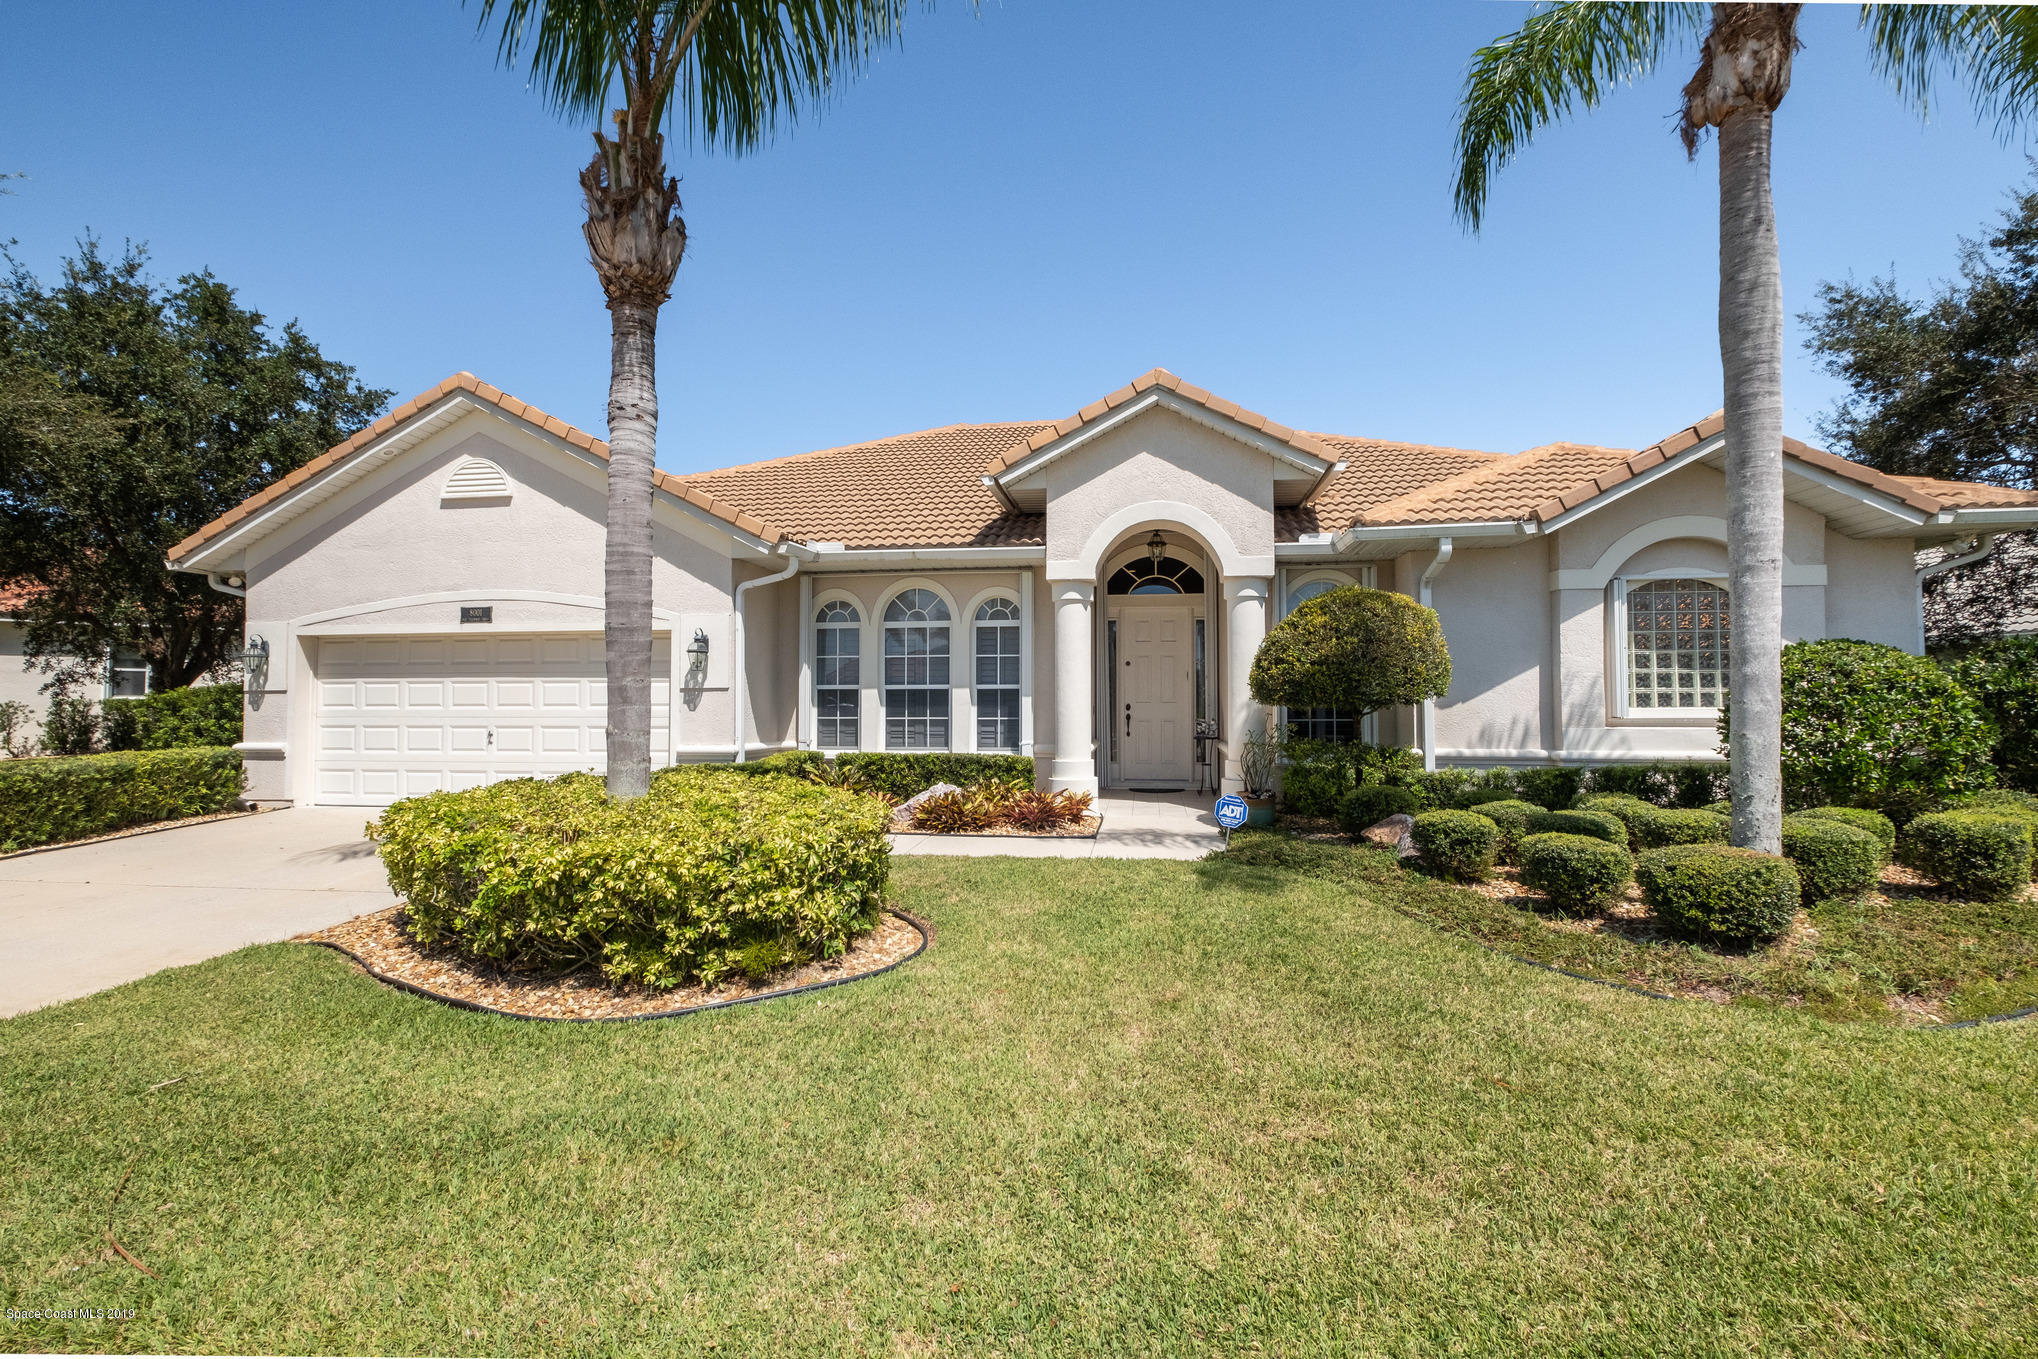 Single Family Homes for Sale at 8001 Old Tramway Melbourne, Florida 32940 United States